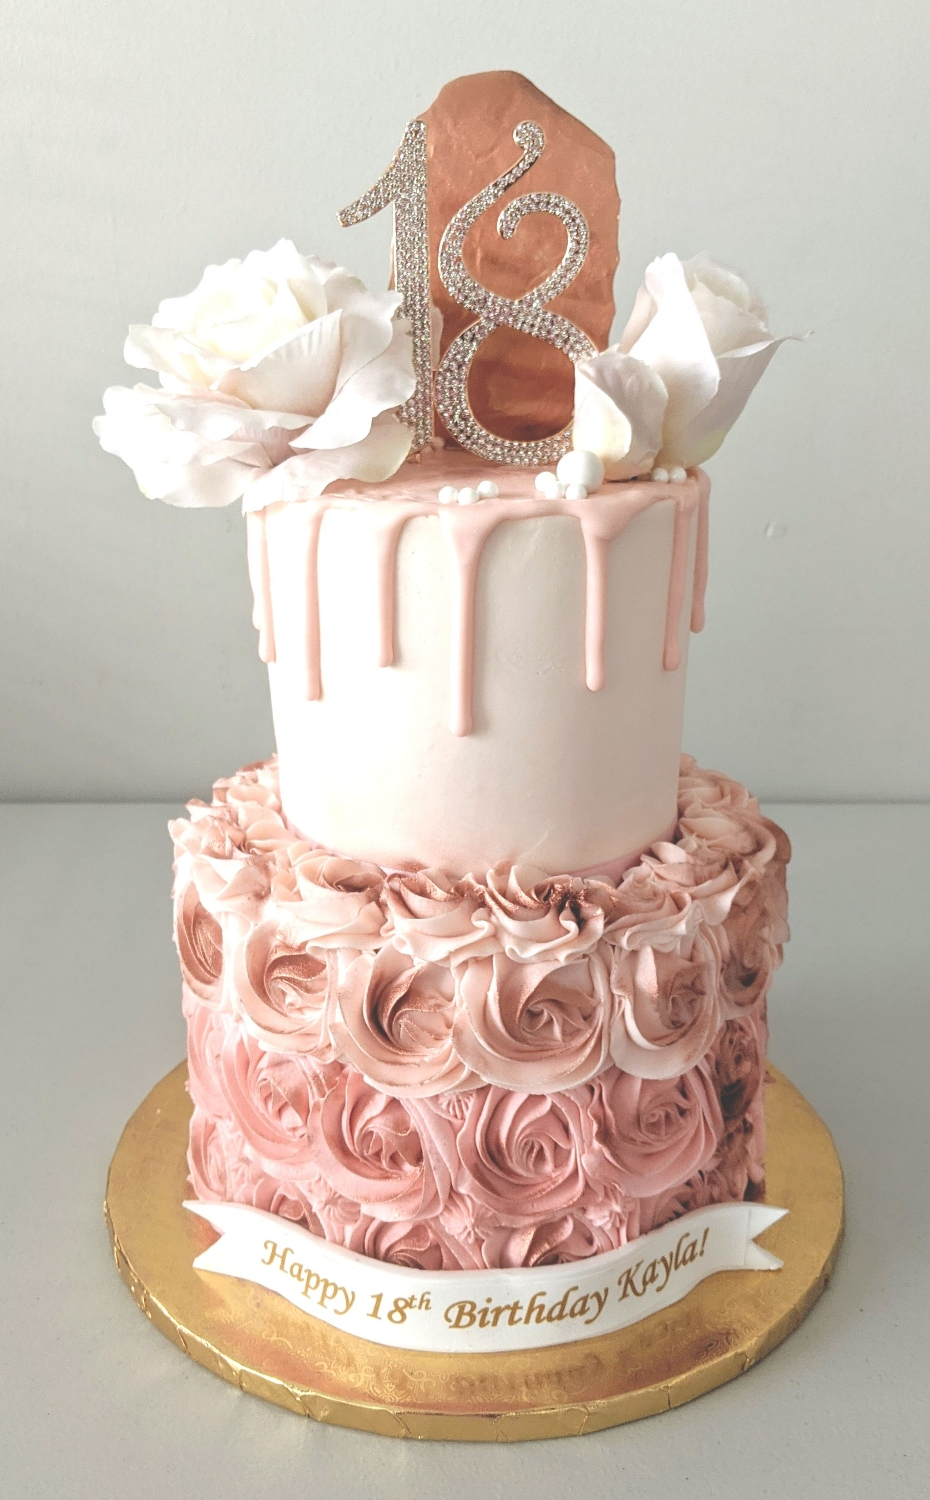 Roses, Rosette, & Rose Gold Cake